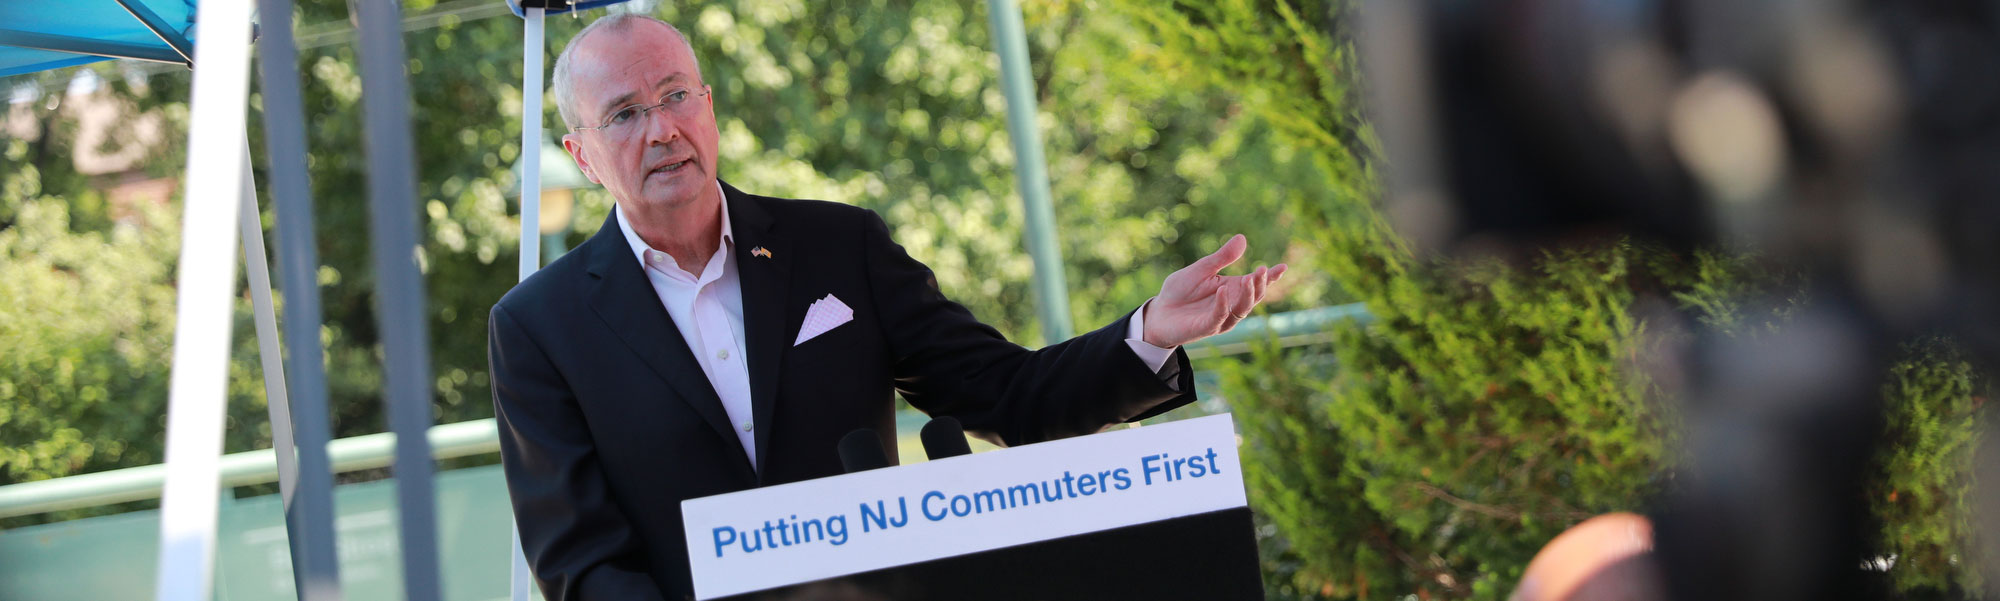 Putting NJ Commuters First